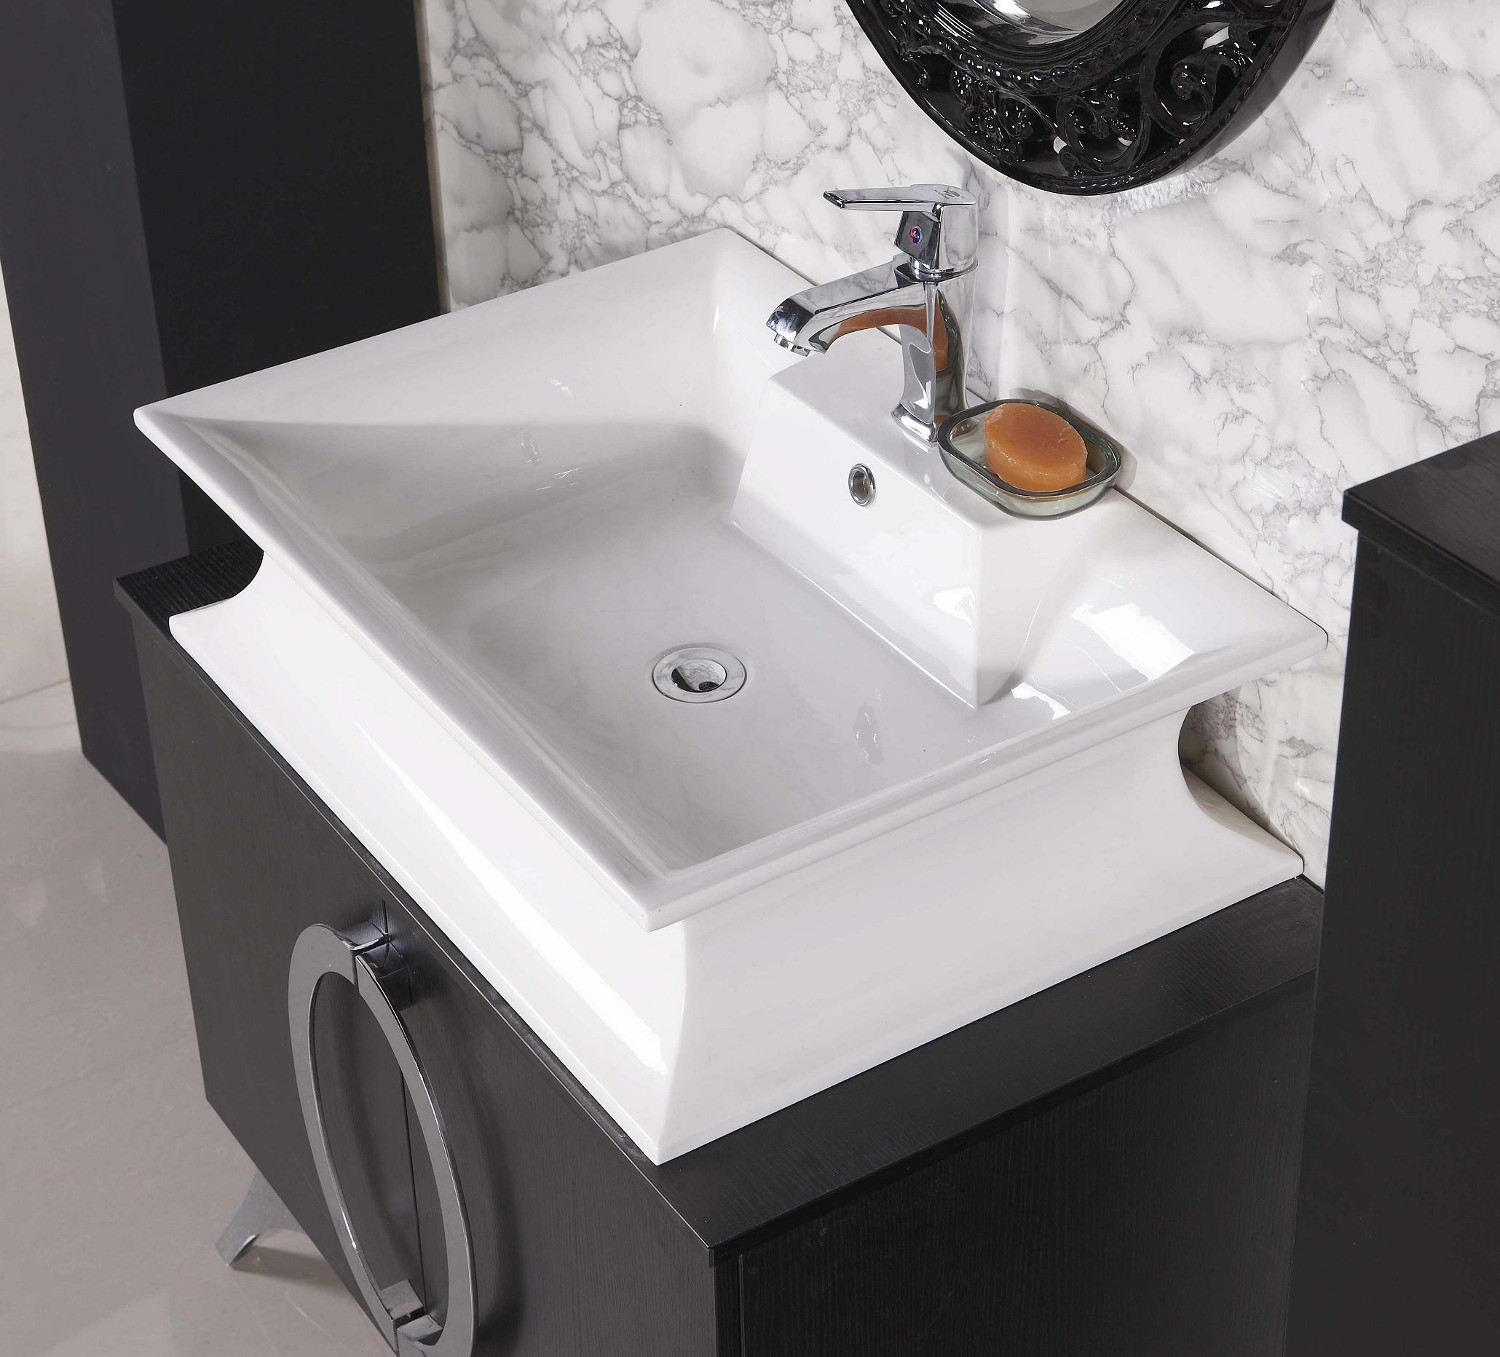 Modern bathroom vanity paris iii Bathroom sink cabinets modern